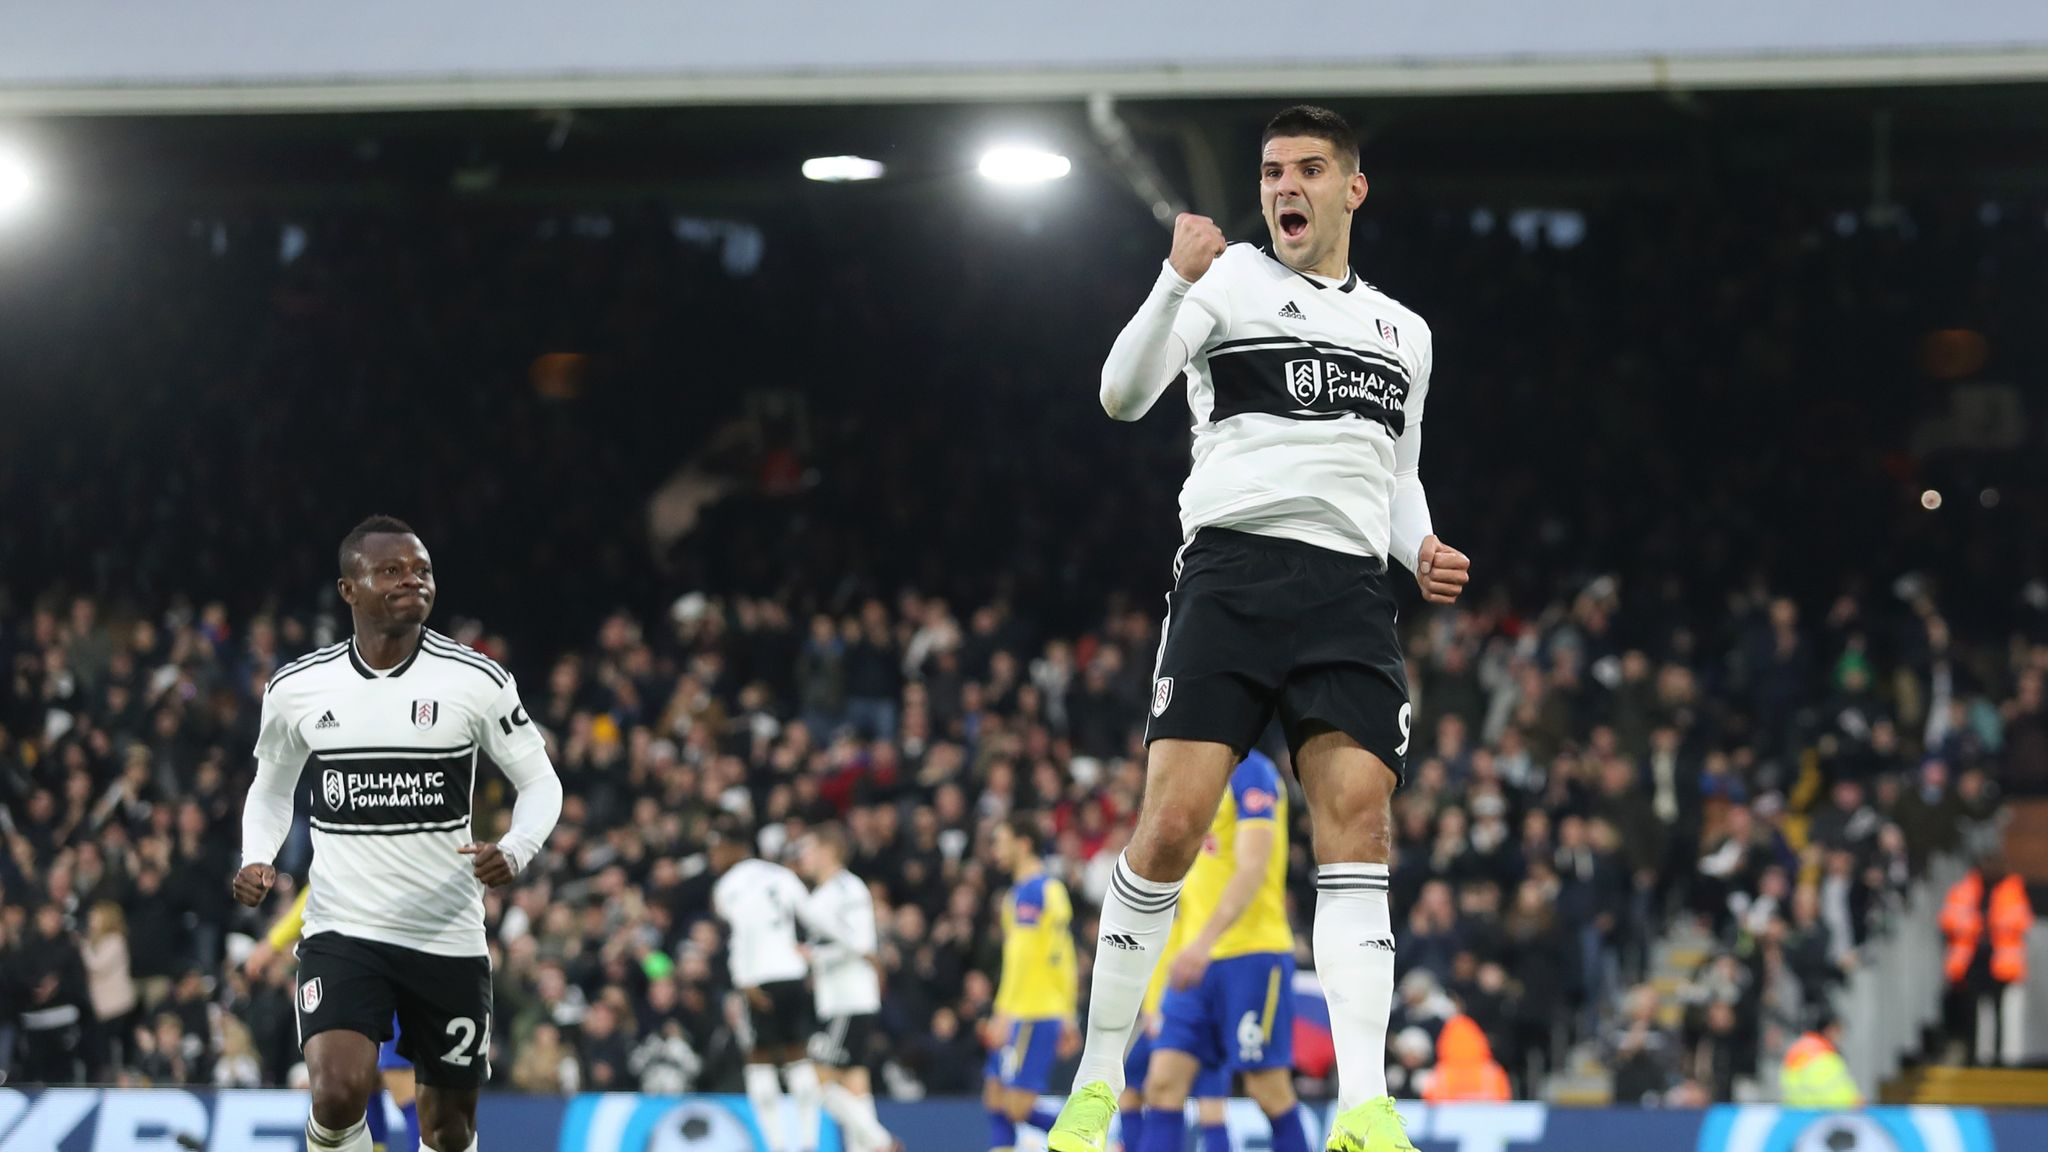 Aleksandar Mitrovic says he expects Fulham to improve in Premier League    Football News   Sky Sports